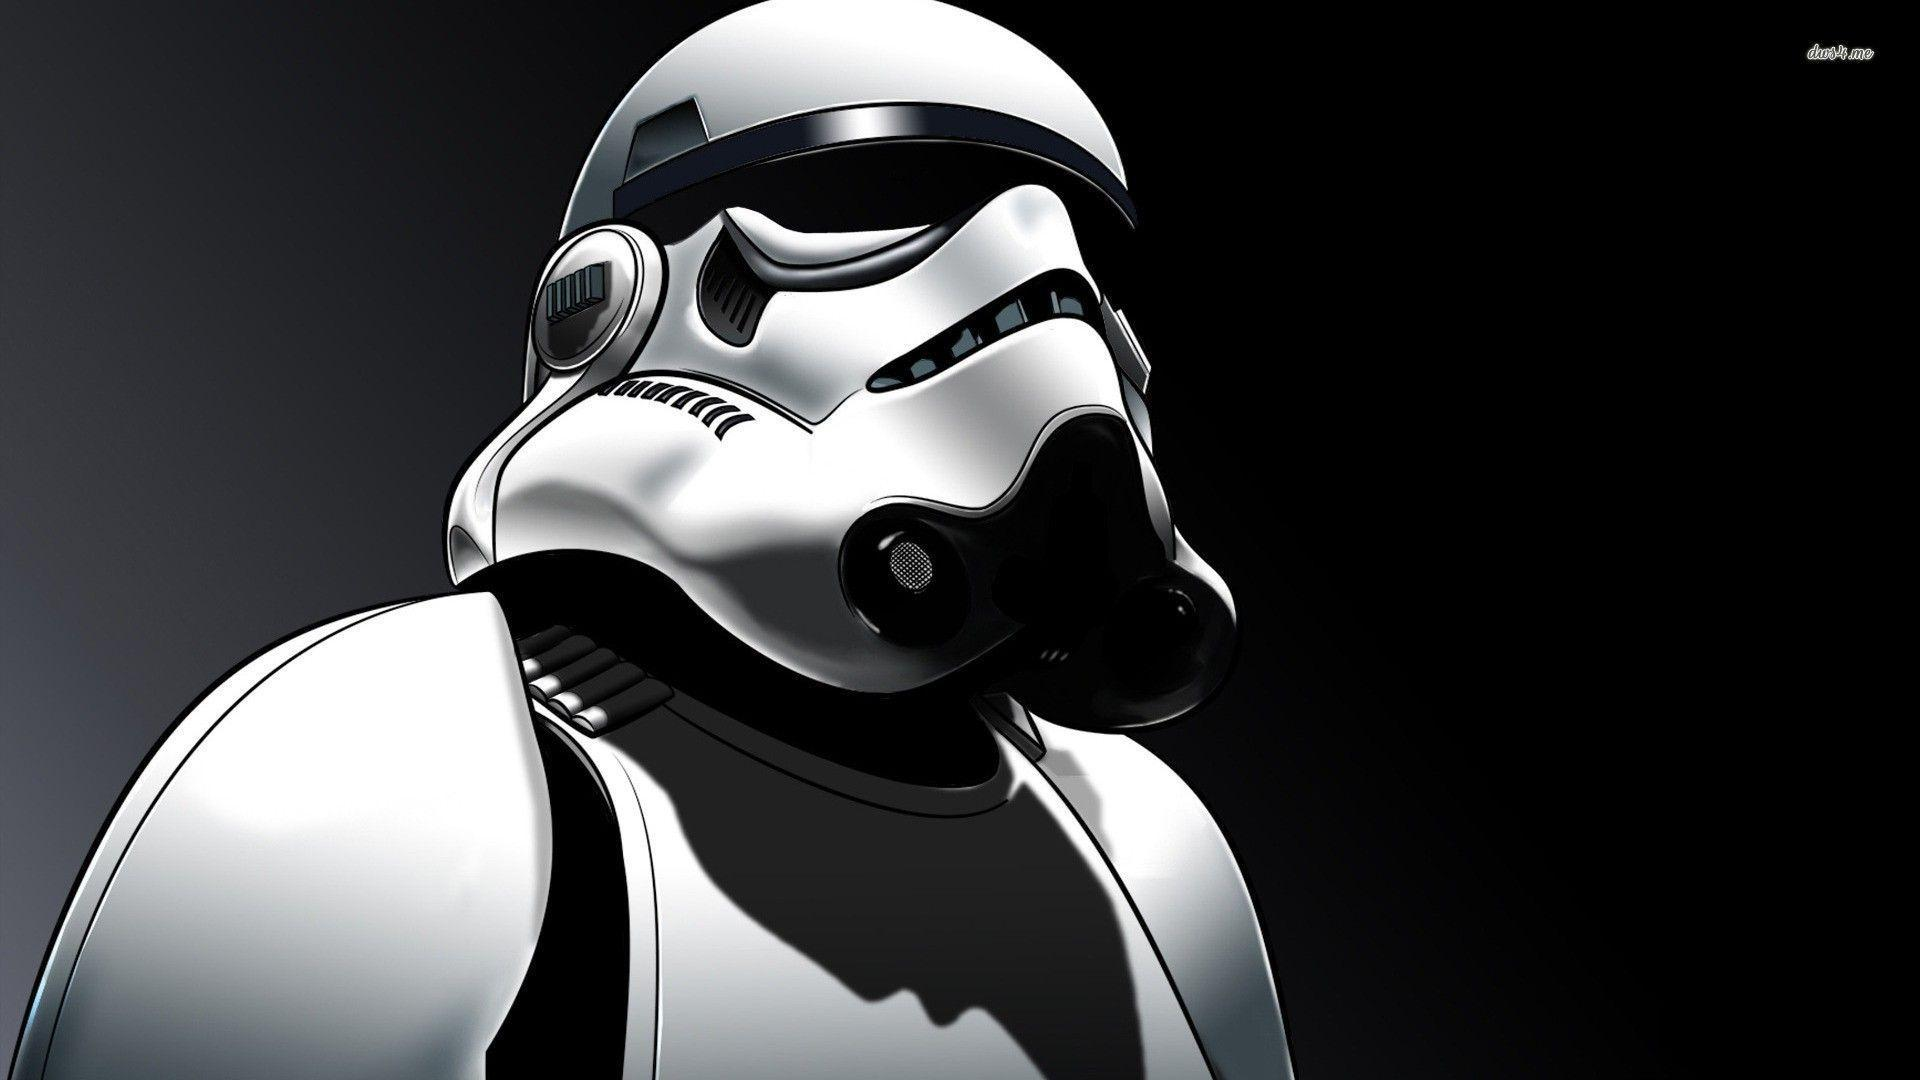 Storm Trooper Wallpaper - WallpaperSafari